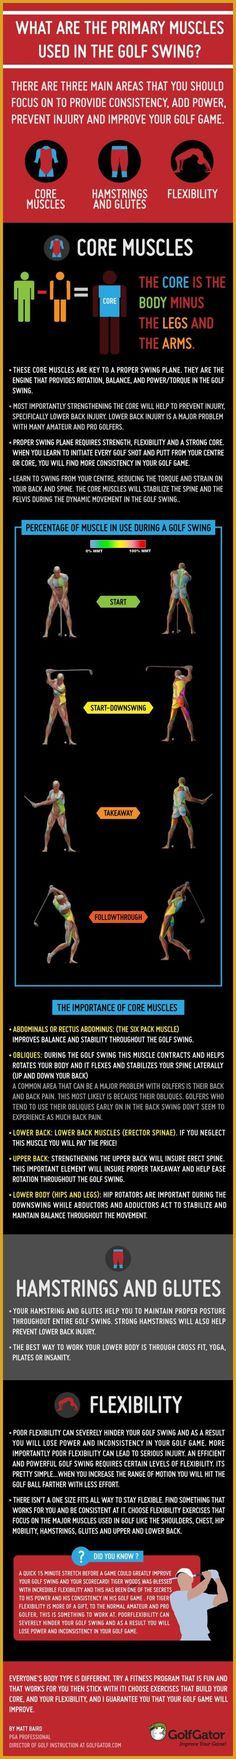 Golf Exercises - The Best Exercises to Improve Your Golf Swing >>> Read more at the image link. #GolfExercises